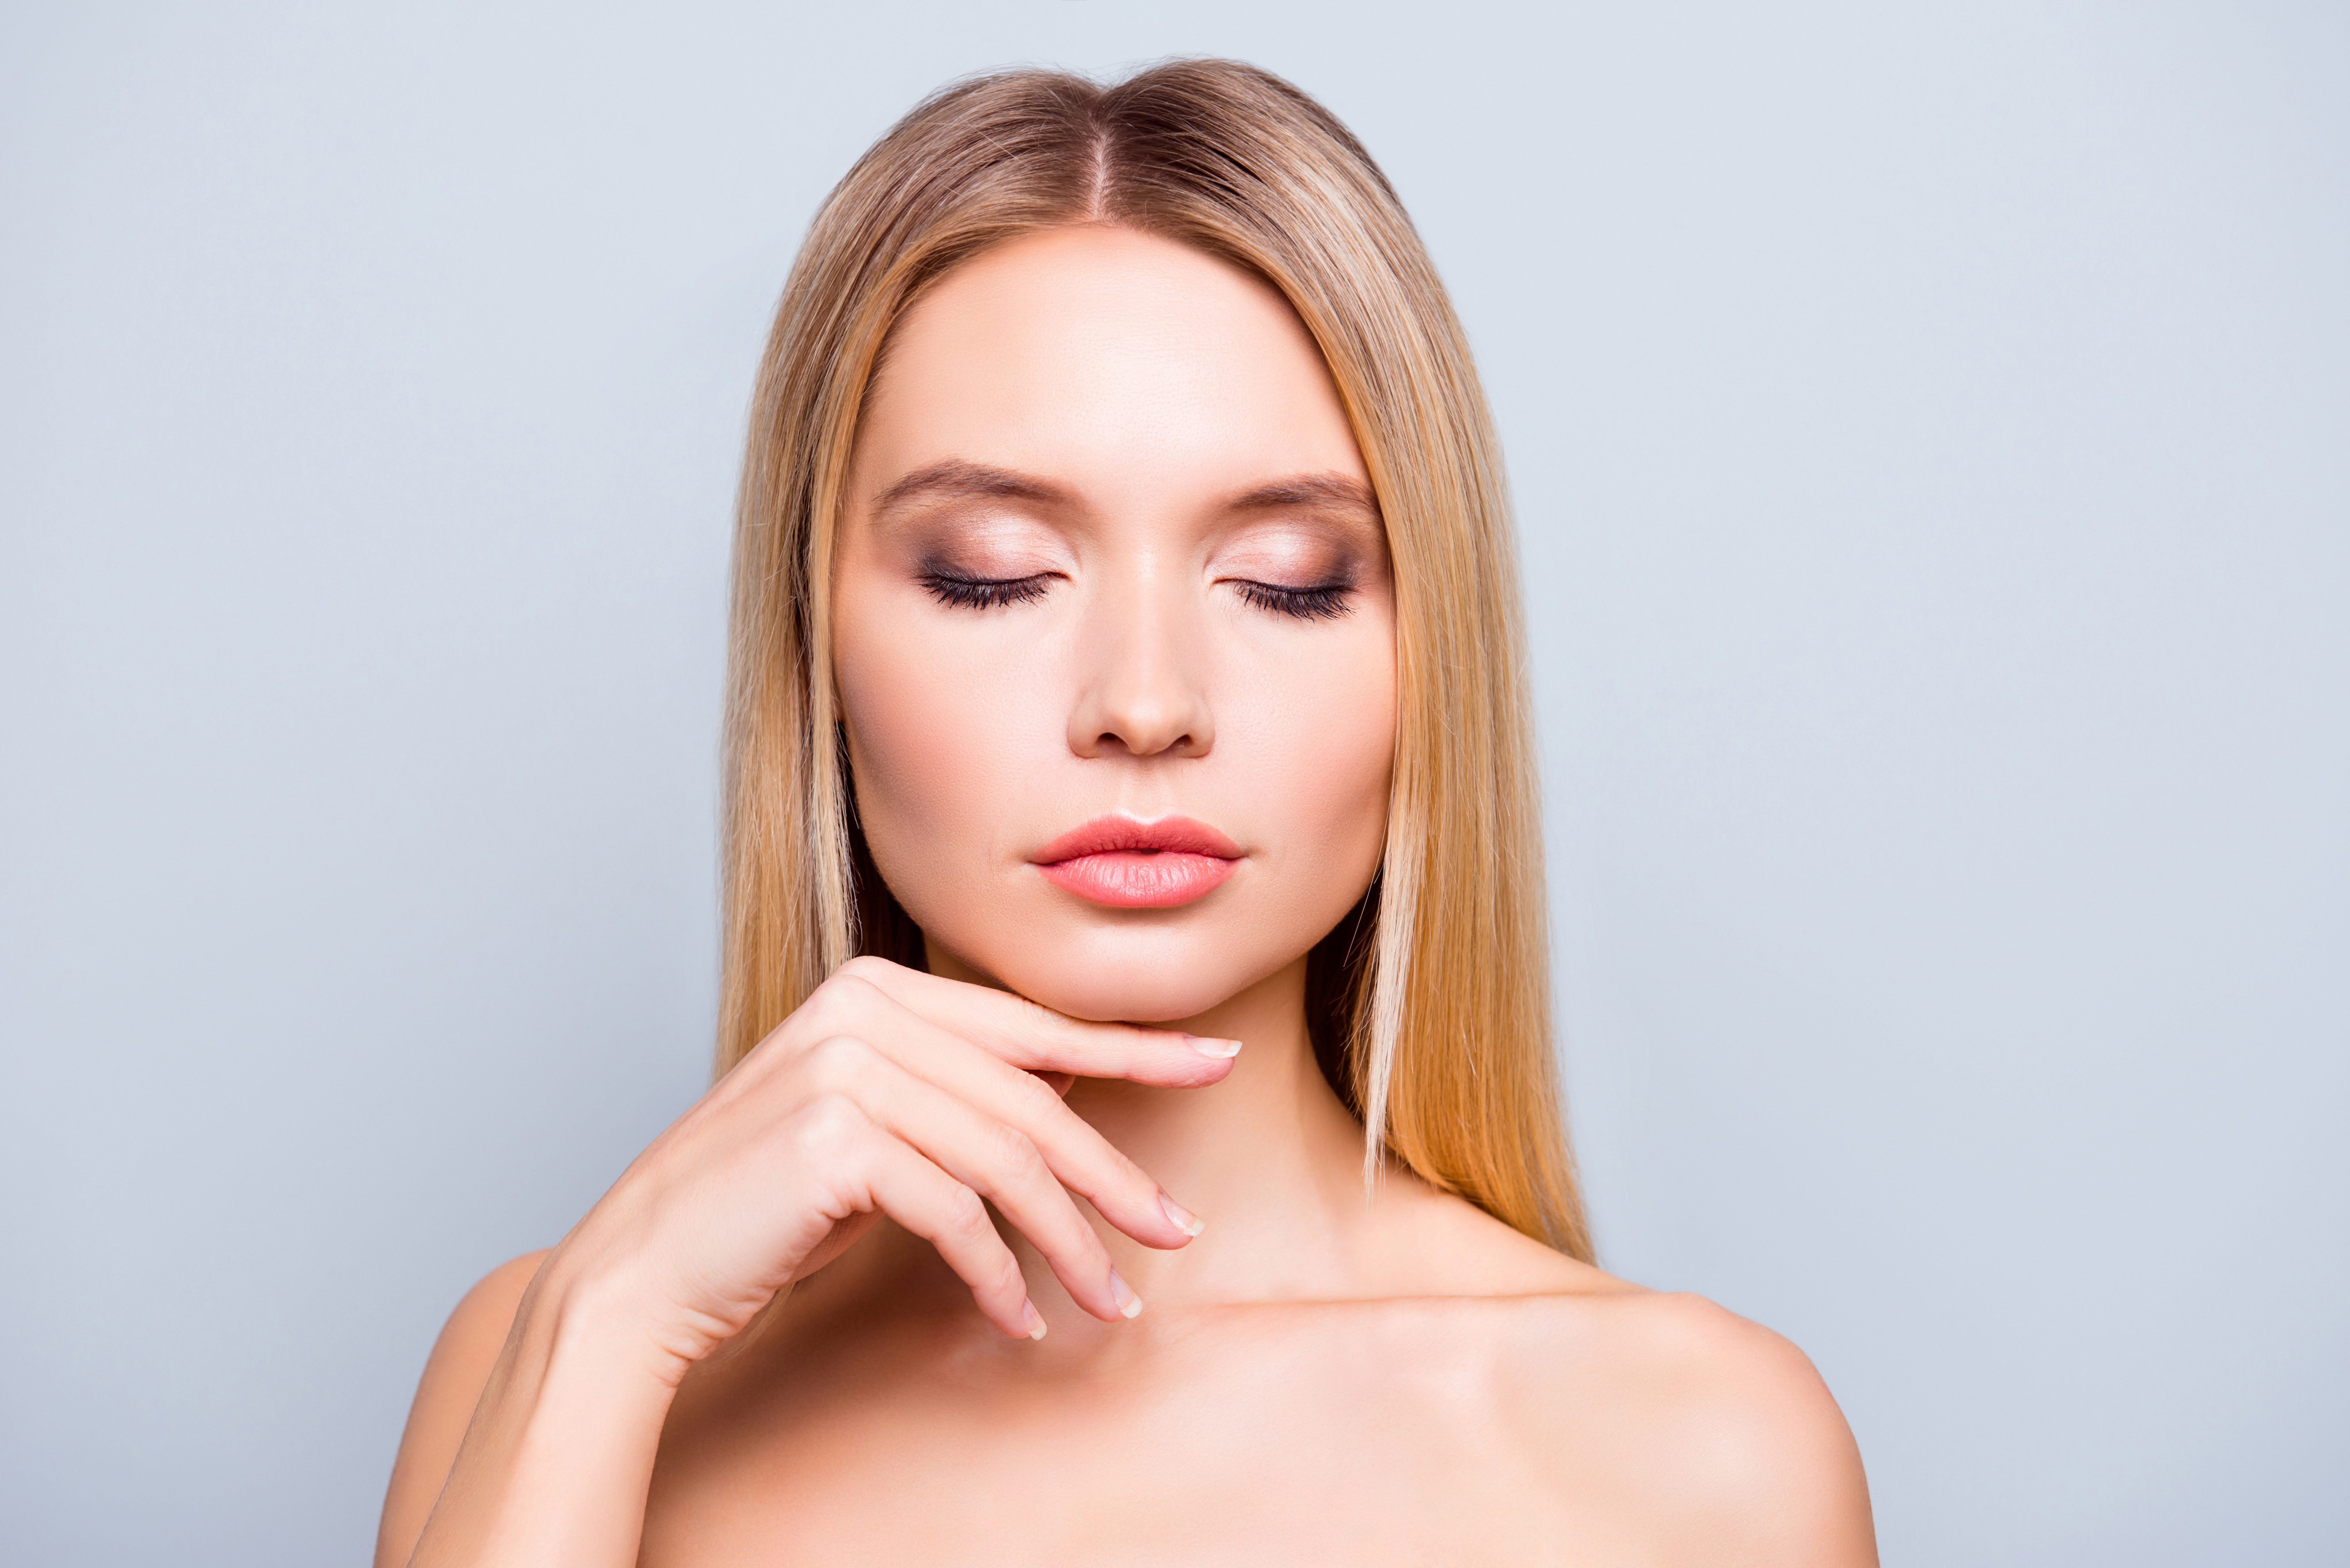 Non-Surgical Alternatives To Popular Cosmetic Surgeries